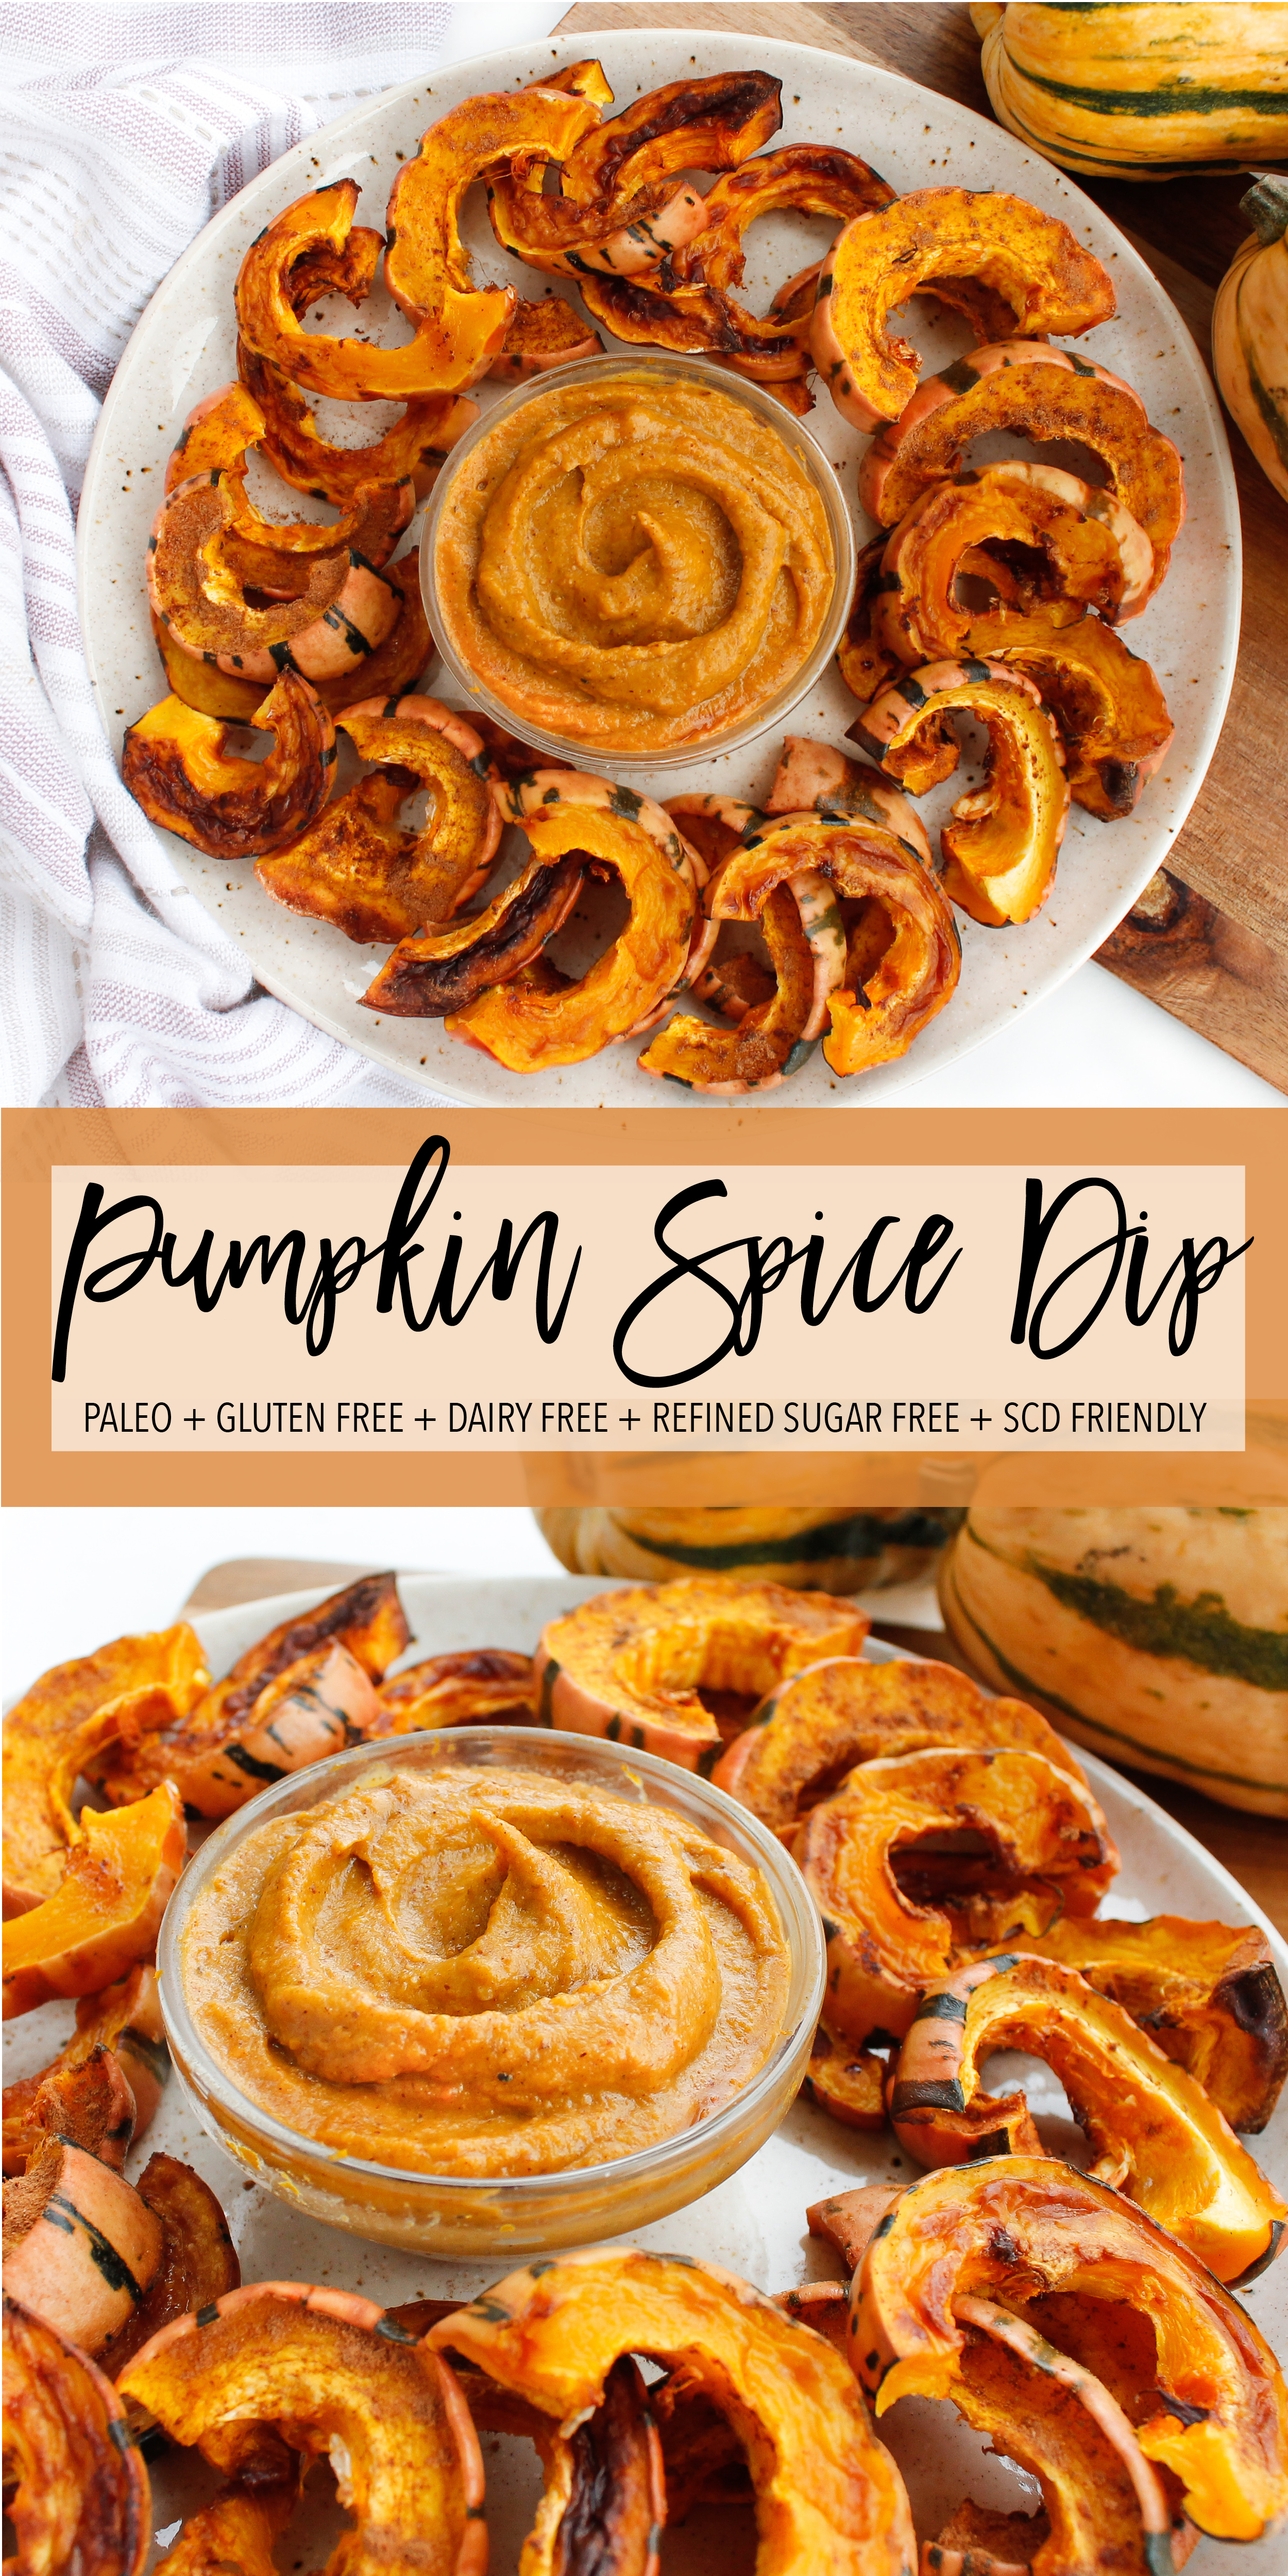 This paleo pumpkin spice dip is a perfect healthy snack or healthy sweet treat! Tastes delicious dipped with roasted squash, carrots, apples or just the spoon! It's paleo, gluten free, dairy free, refined sugar free and Specific Carbohydrate Diet friendly! #scdfriendly #paleo #paleosnack